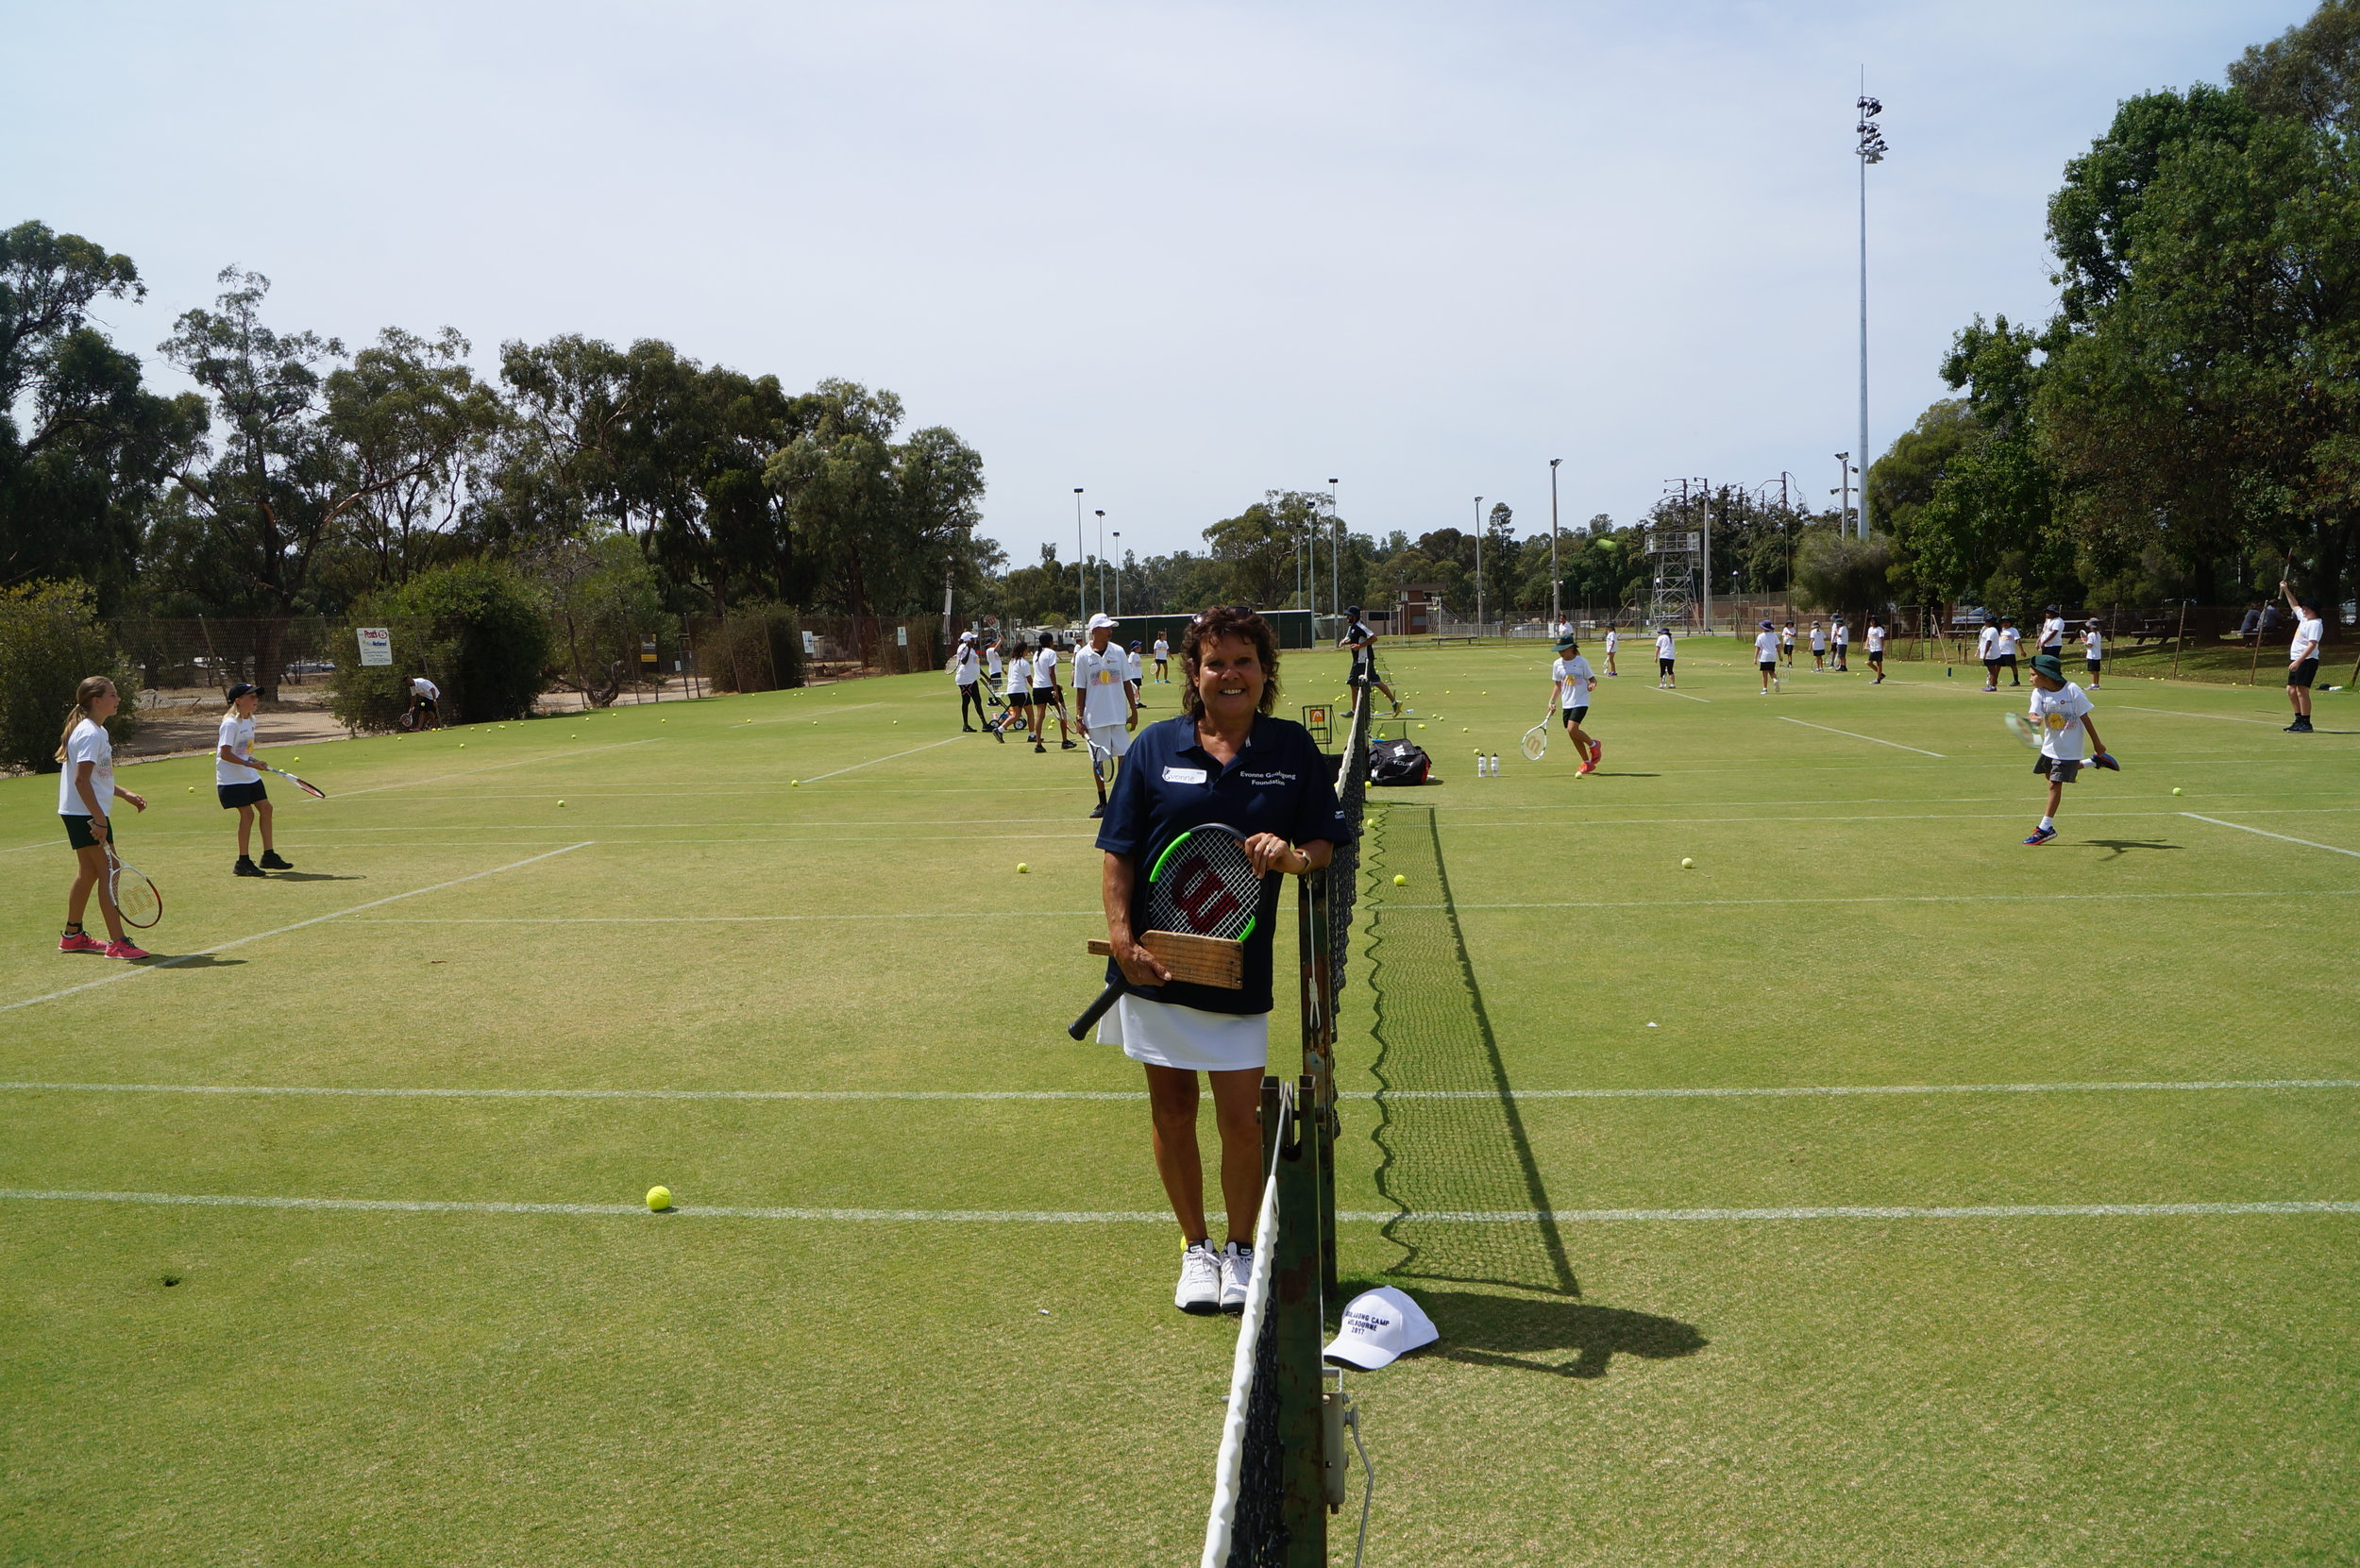 Which racquet will Evonne use on the lawns of Echuca?